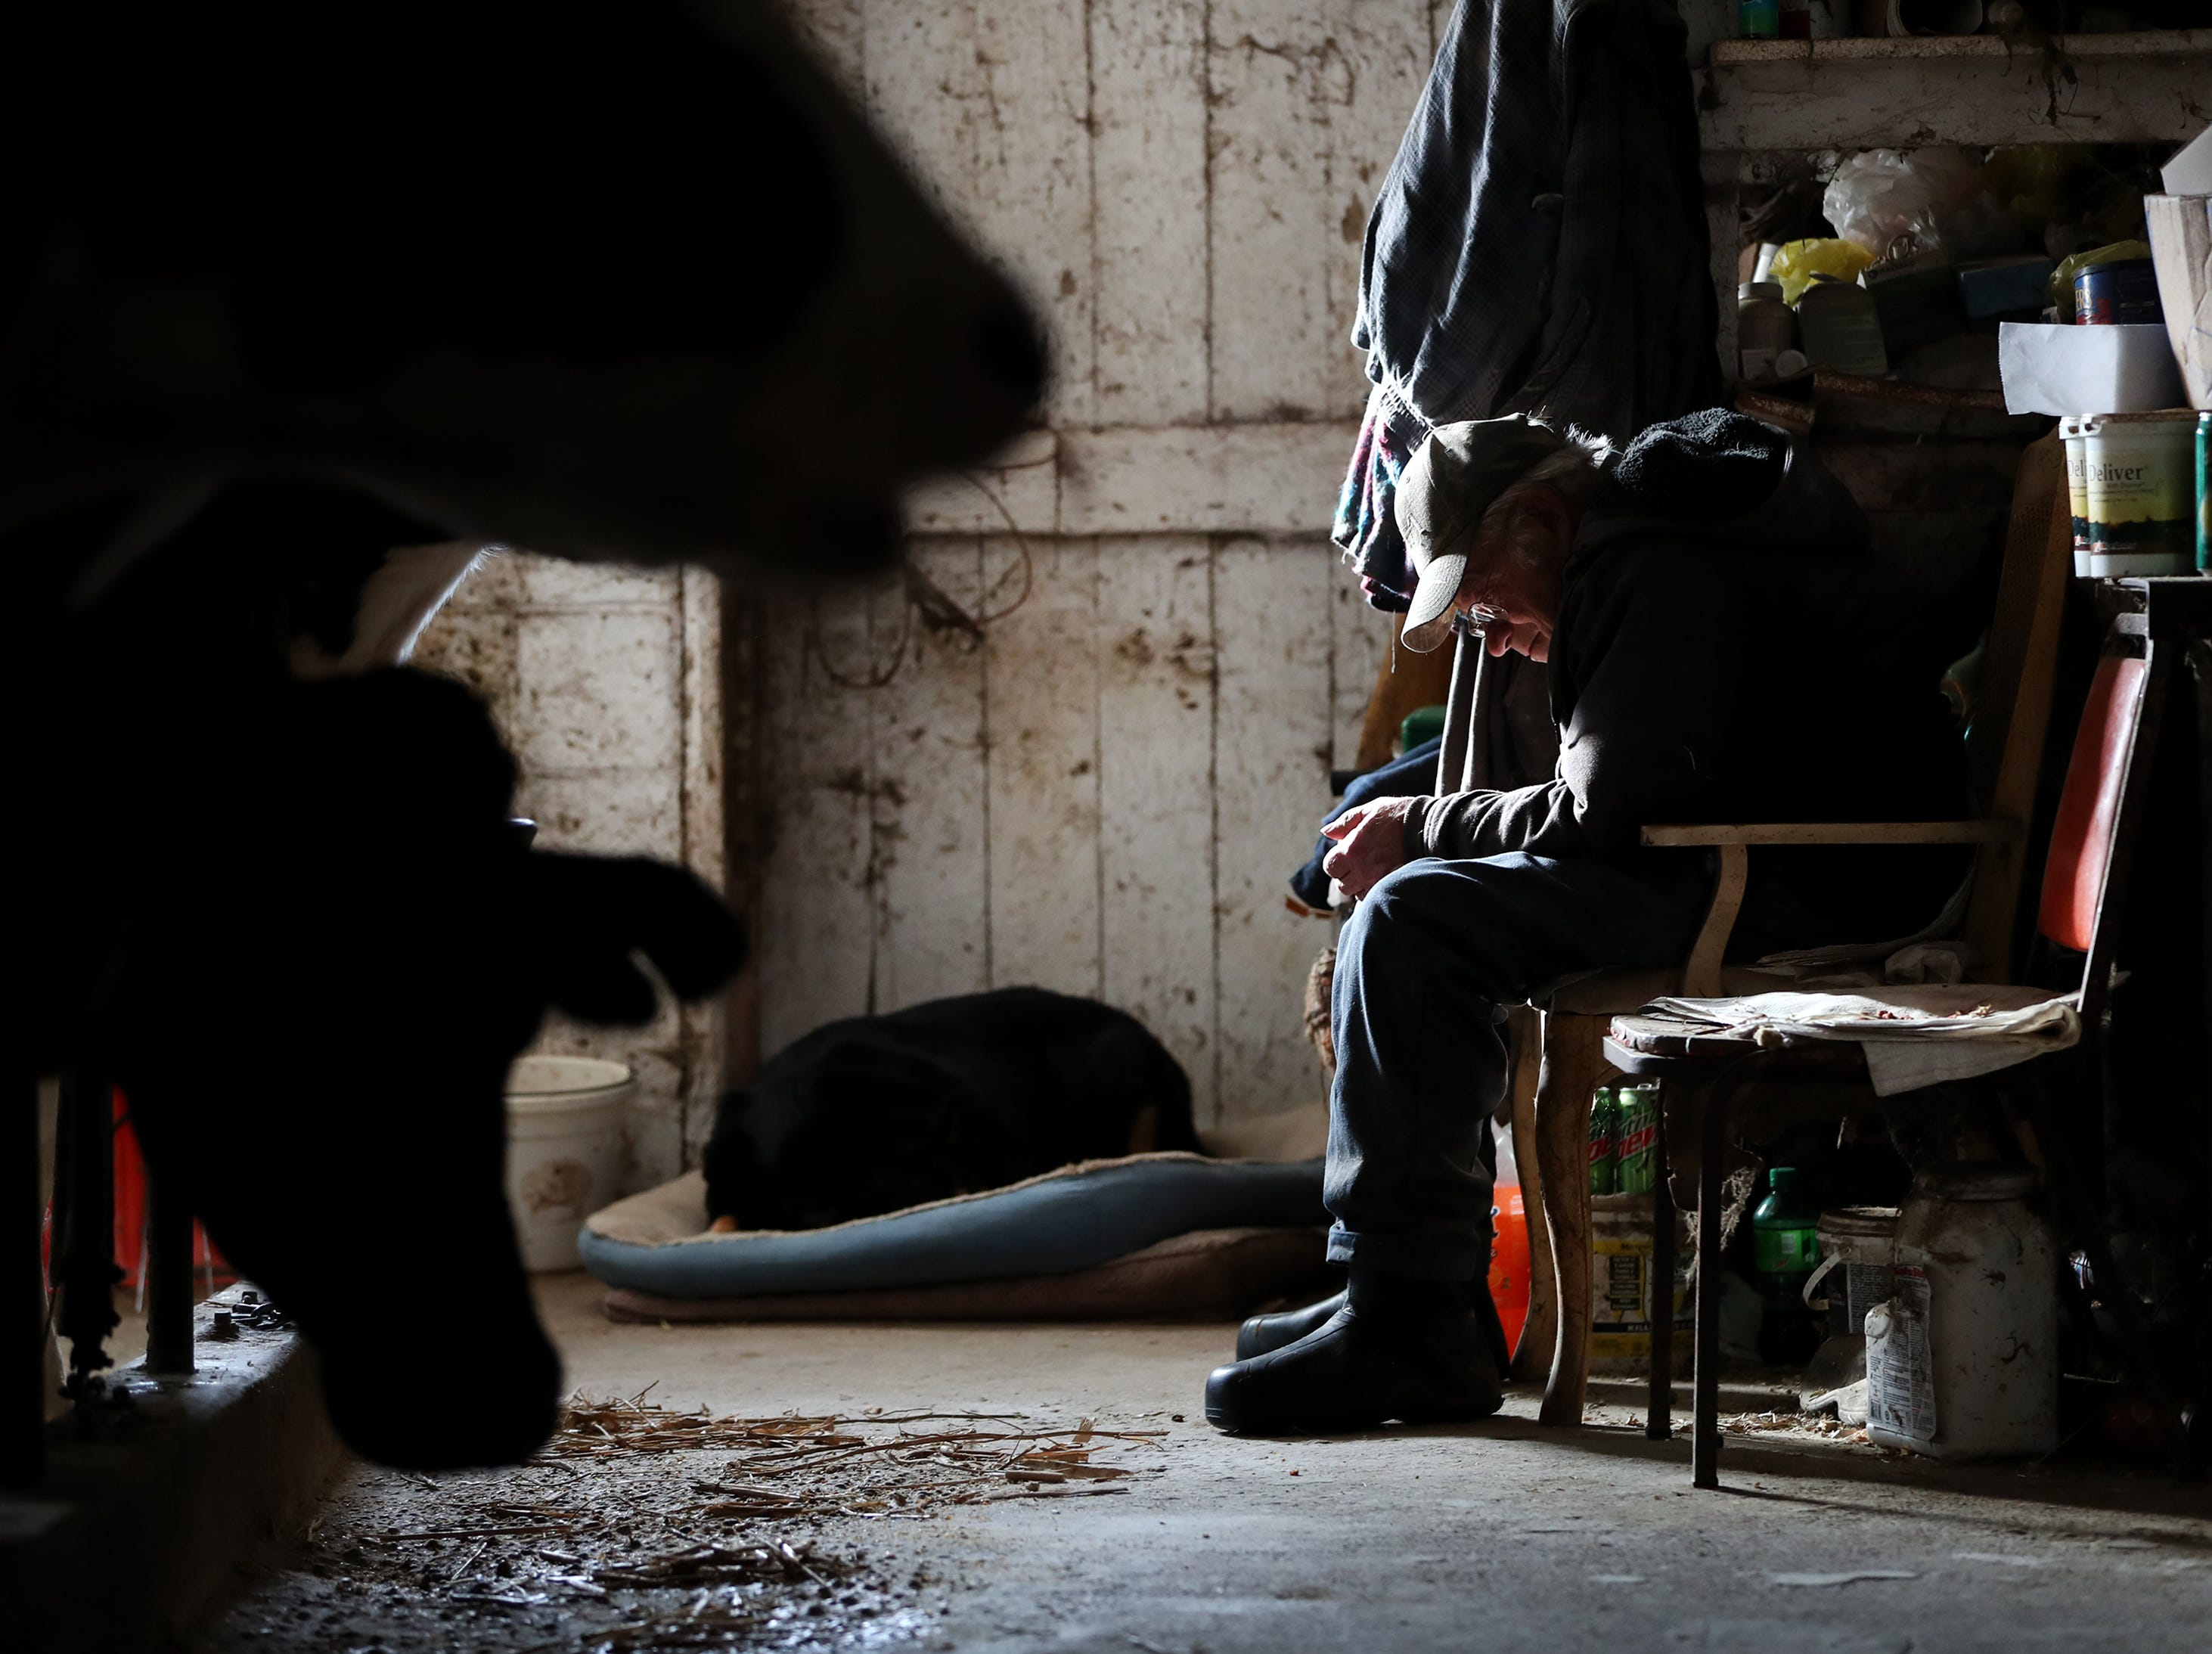 John Rieckmann, 79, takes a break from daily chores in his dairy farm's barn Wednesday Feb. 13, 2019, in Fremont, Wis. Rieckmann and his wife Mary are struggling to make ends meet and have started a GoFundMe Campaign to help raise to support their farm.Danny Damiani/USA TODAY NETWORK-Wisconsin